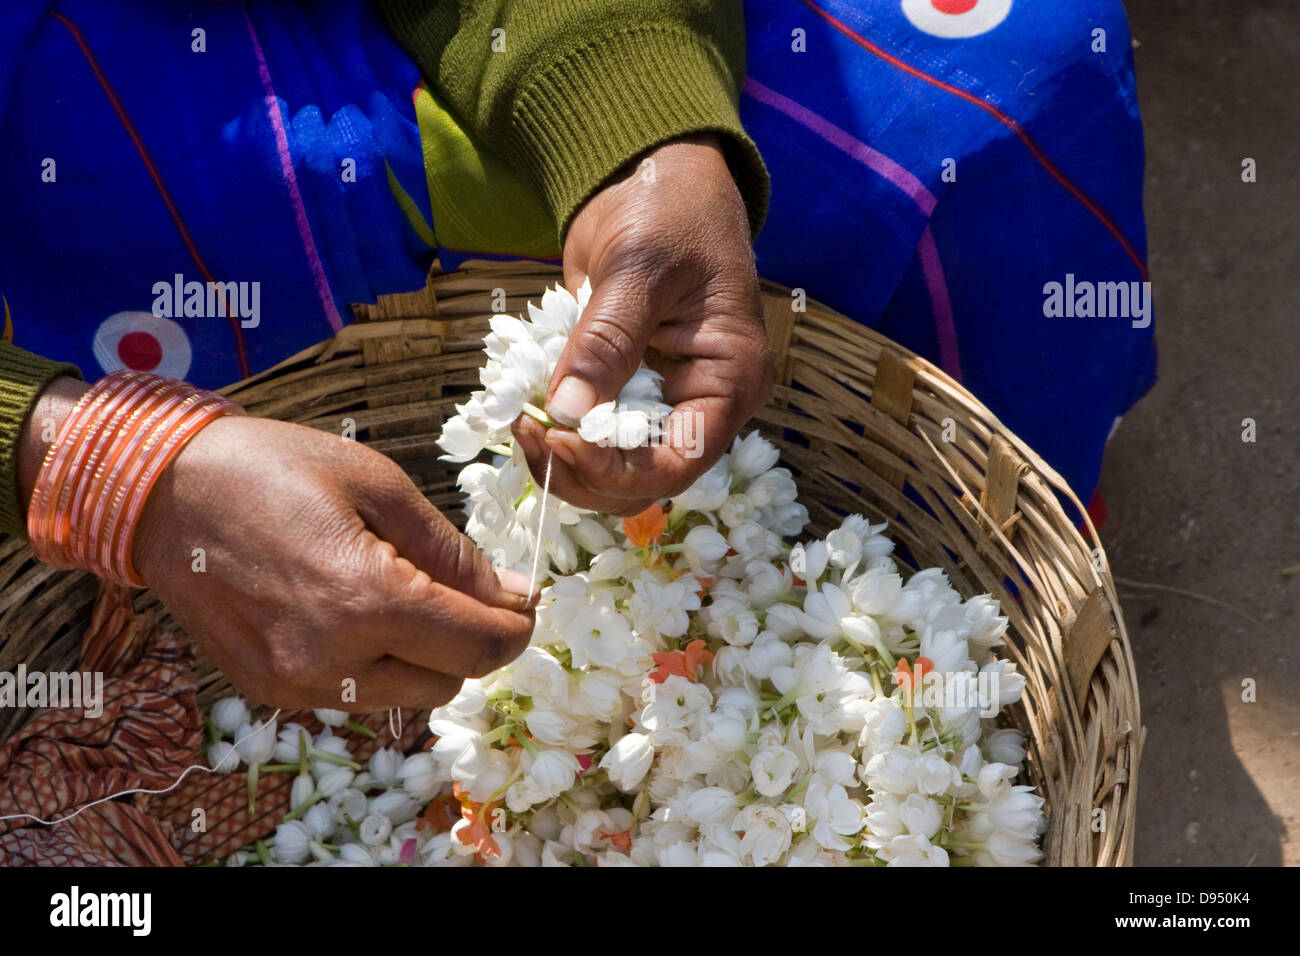 Asia, India, Karnataka, Belur, Woman making jasmine garlands outside a Hindu temple - Stock Image